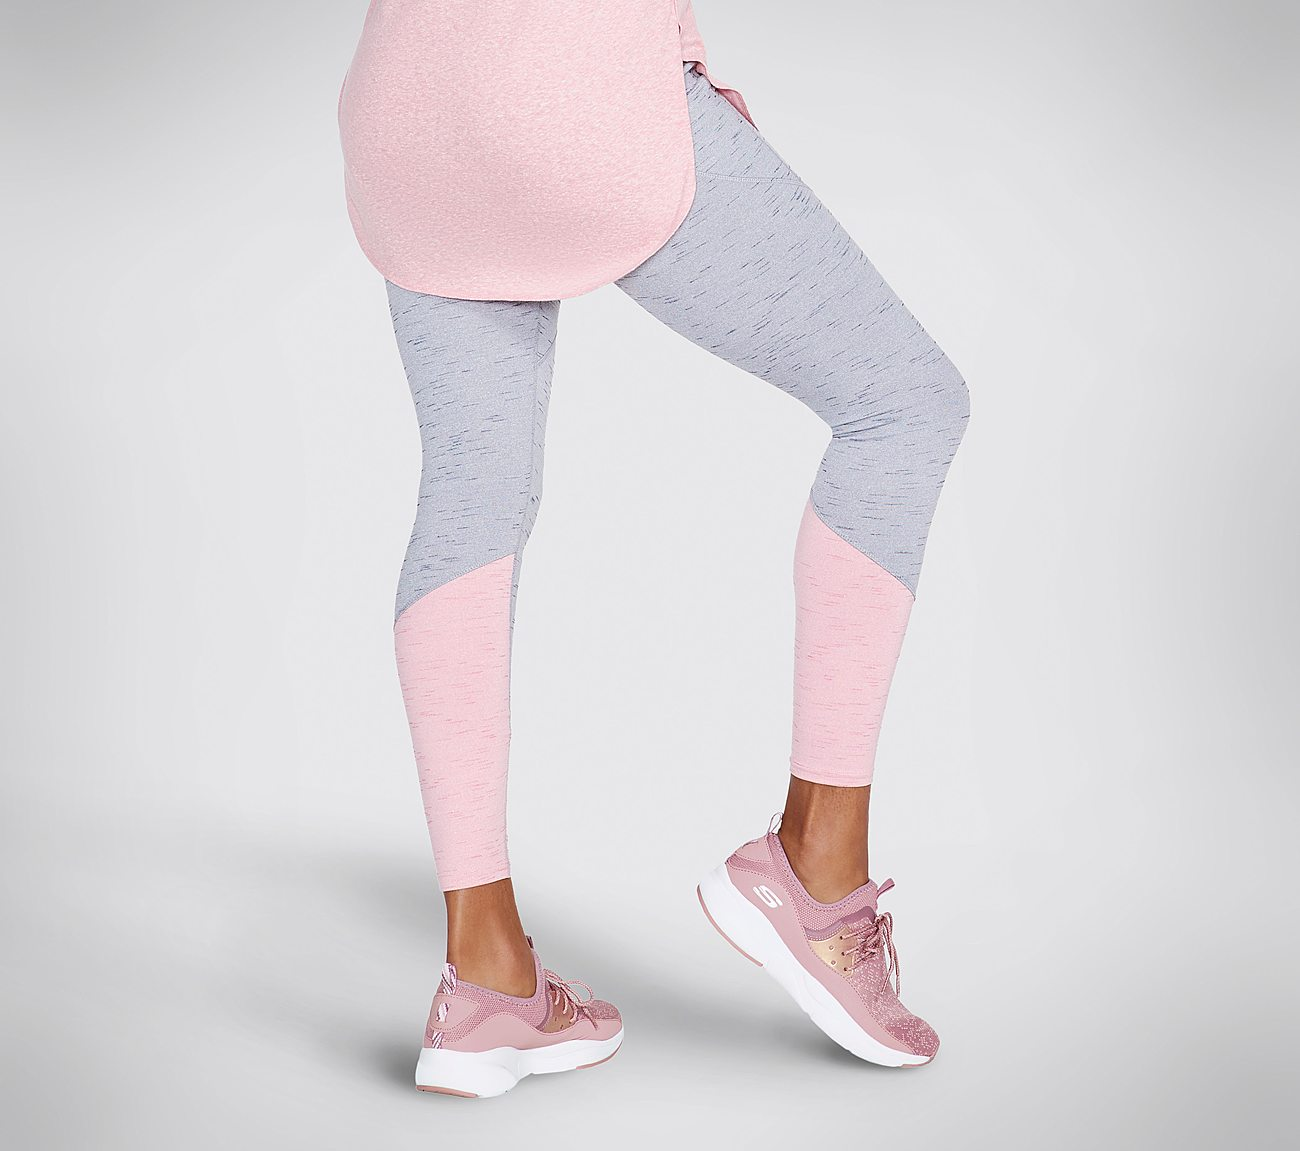 cdab542c9609f5 Skechers Performance Apparel Solstice Legging. Click/tap to zoom ·  Alternate View 1 · Alternate View 2